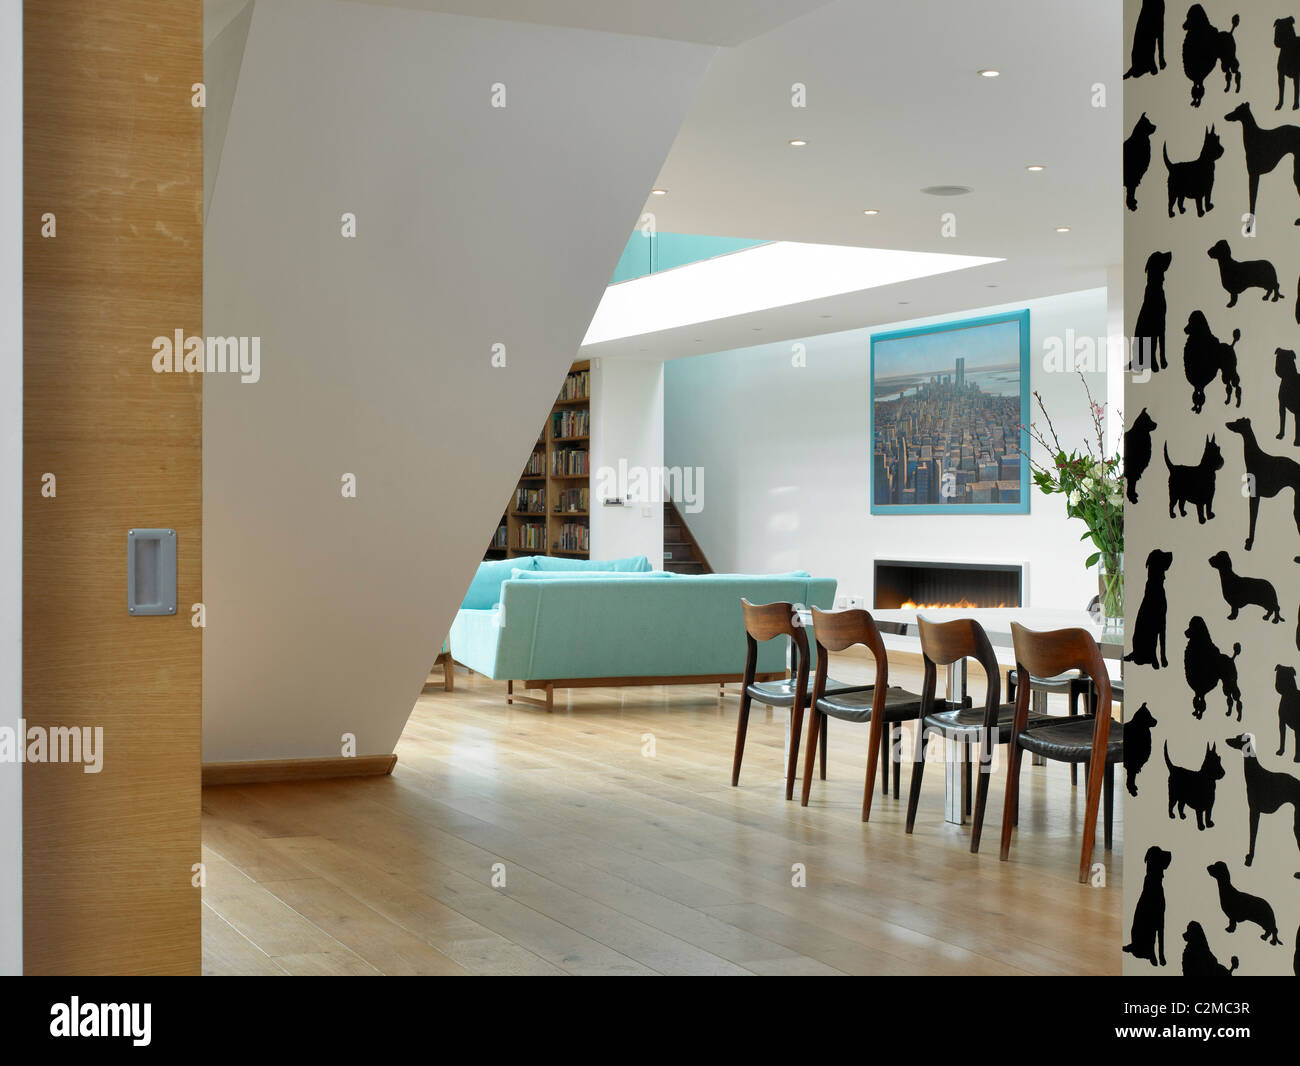 garden house. openplan living room with dog silhouette wallpaper